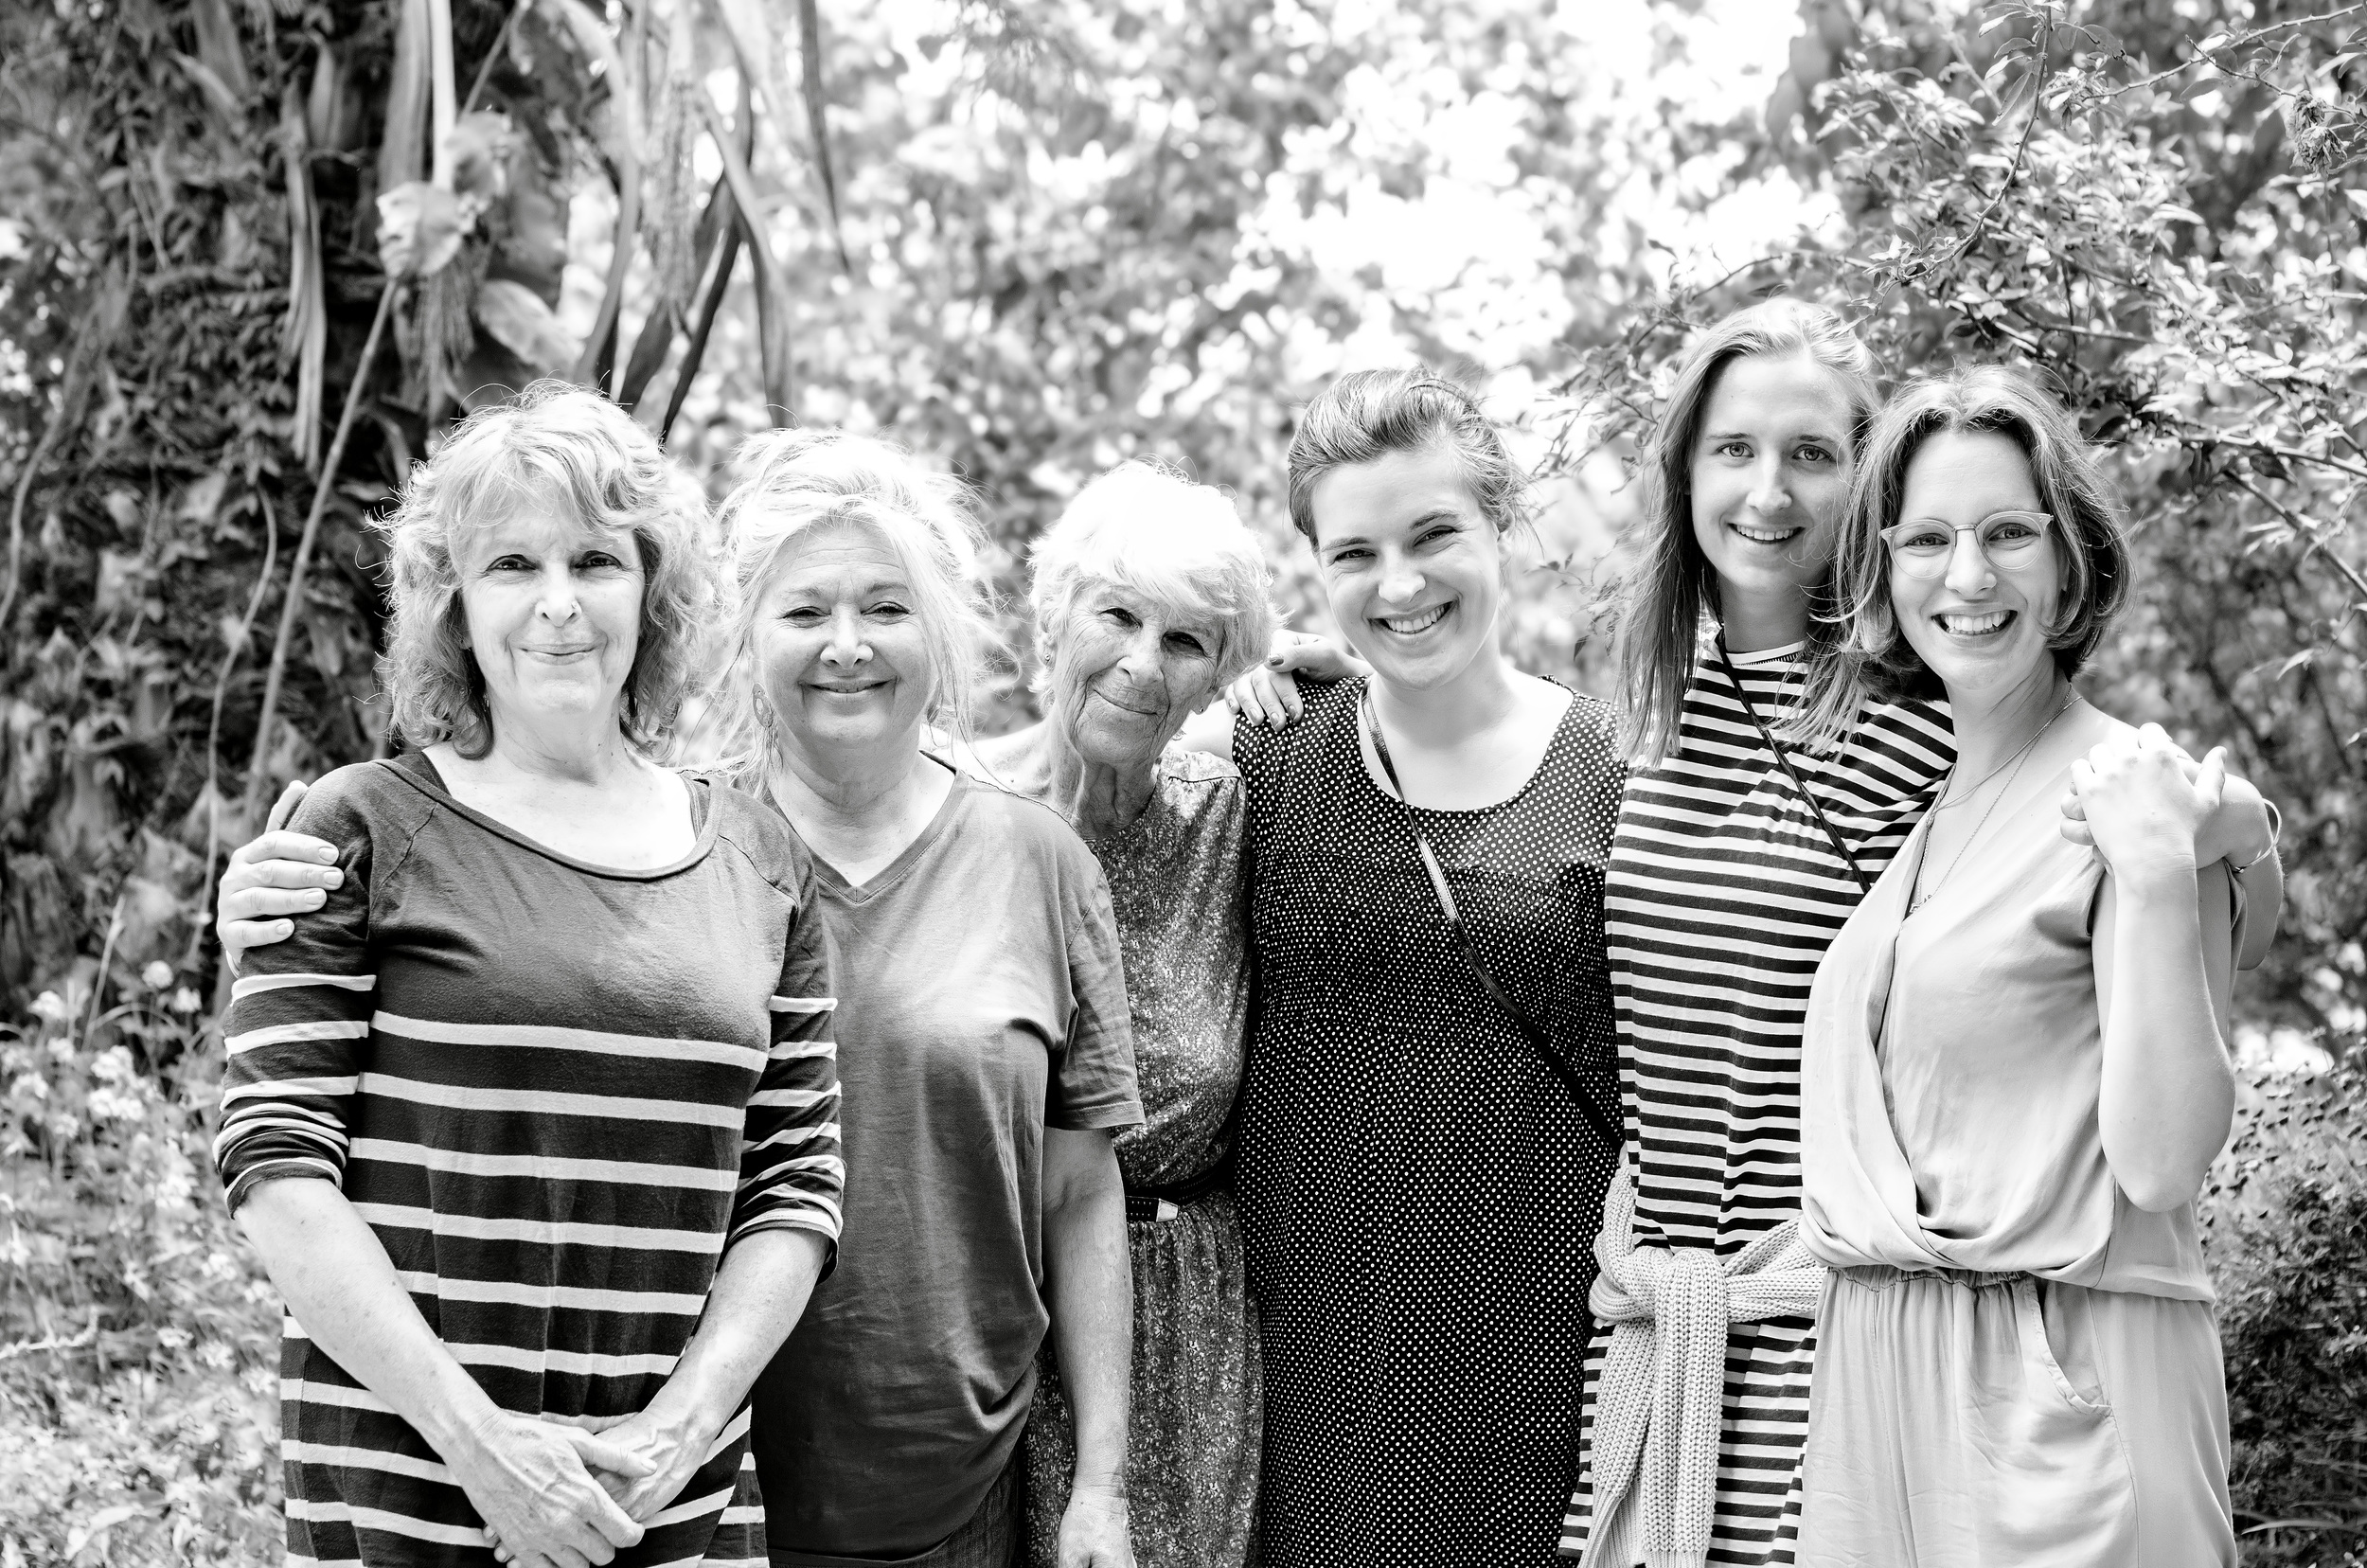 From the left: Sygalle (my mother), Michal (cousin from Jerusalem), Ayala (my grandma from my mother's side),Ida, Mari & Laura (Ida & Laura are sisters, our cousins from Denmark. Mari is their good friend from Norway).